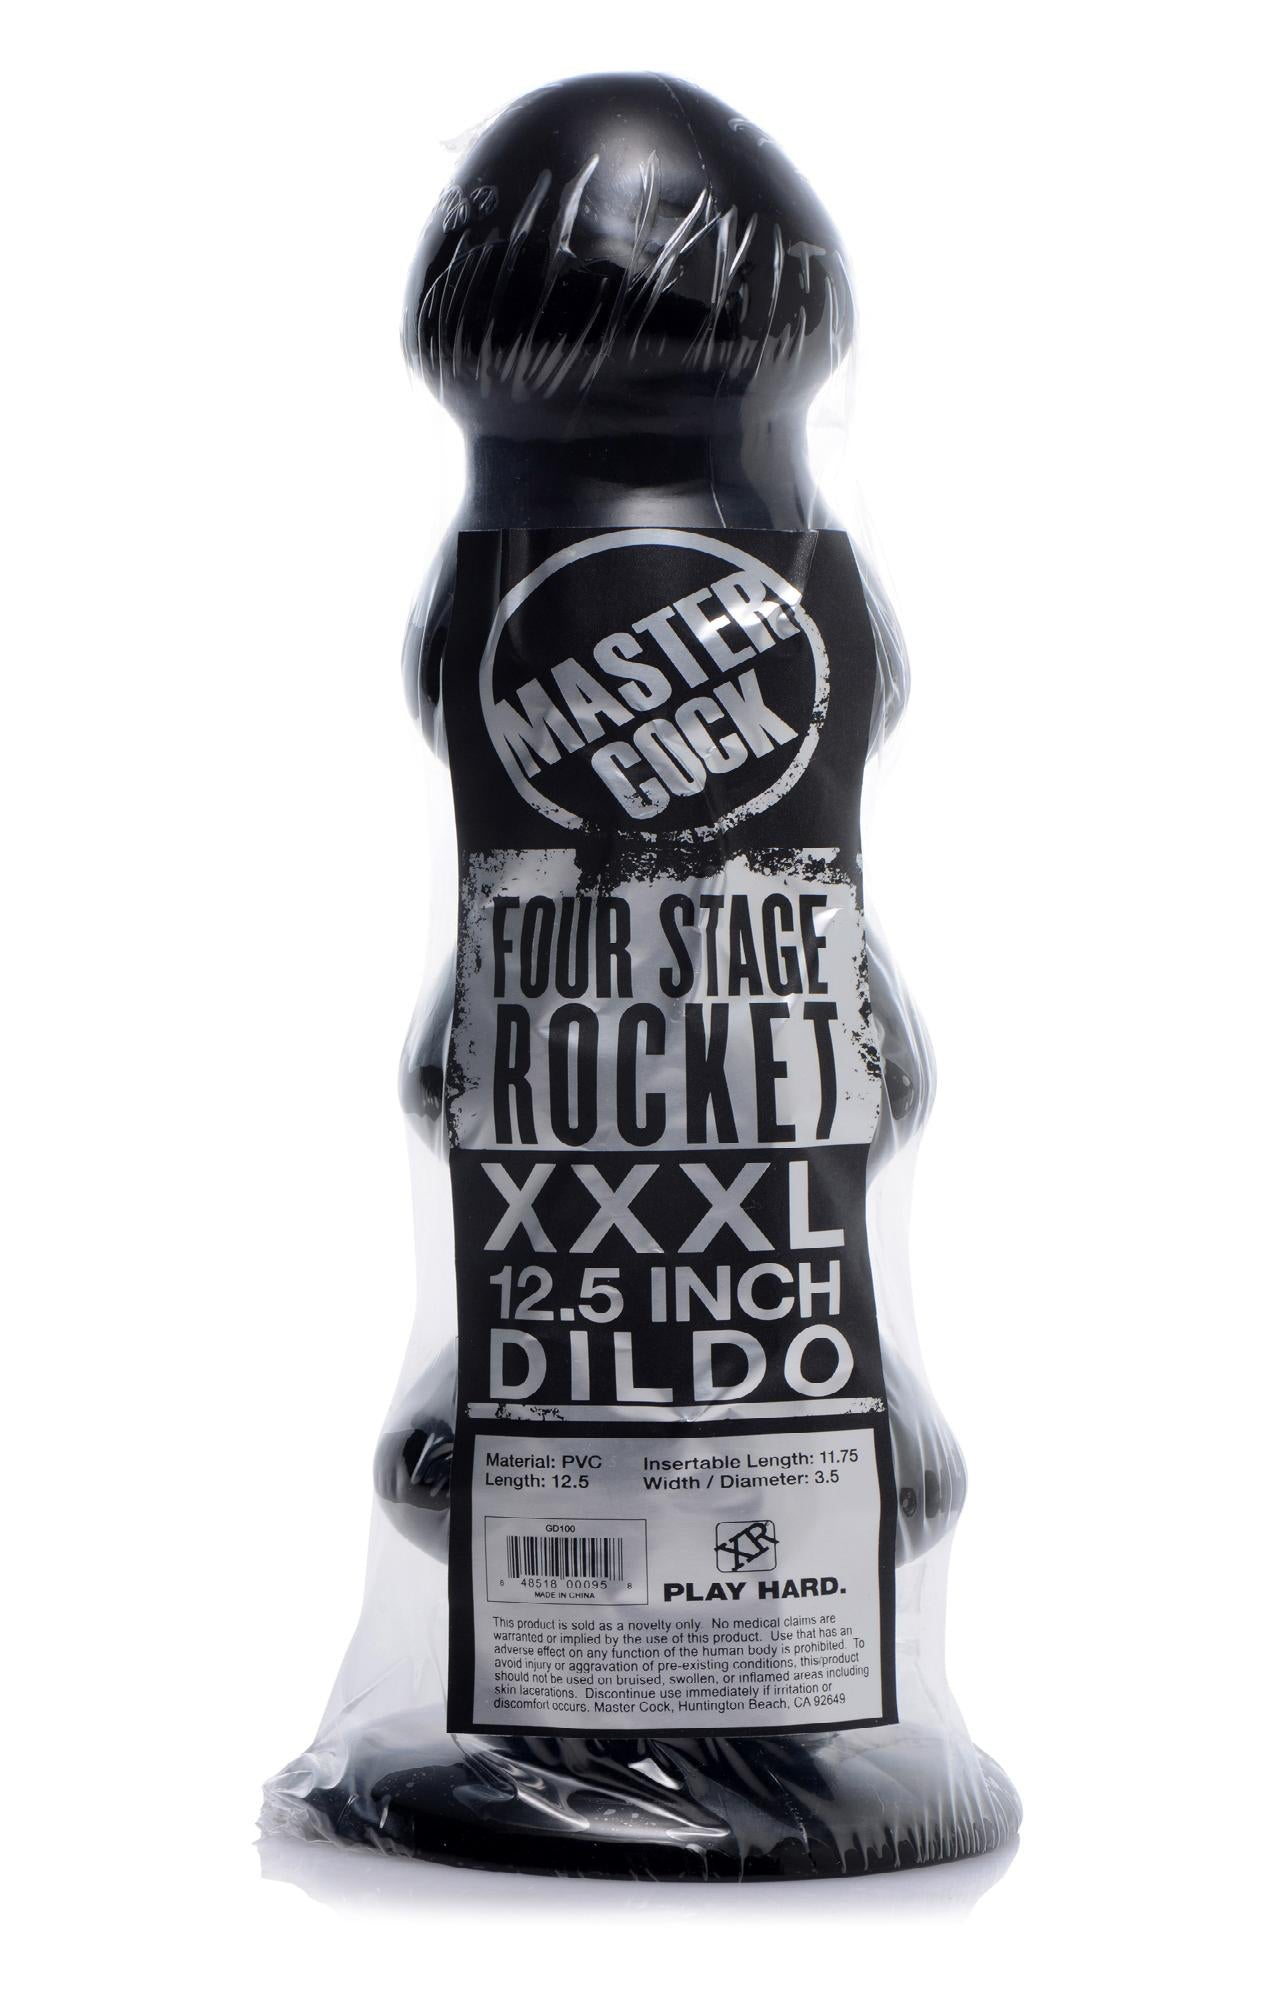 Four Stage Rocket Dildo